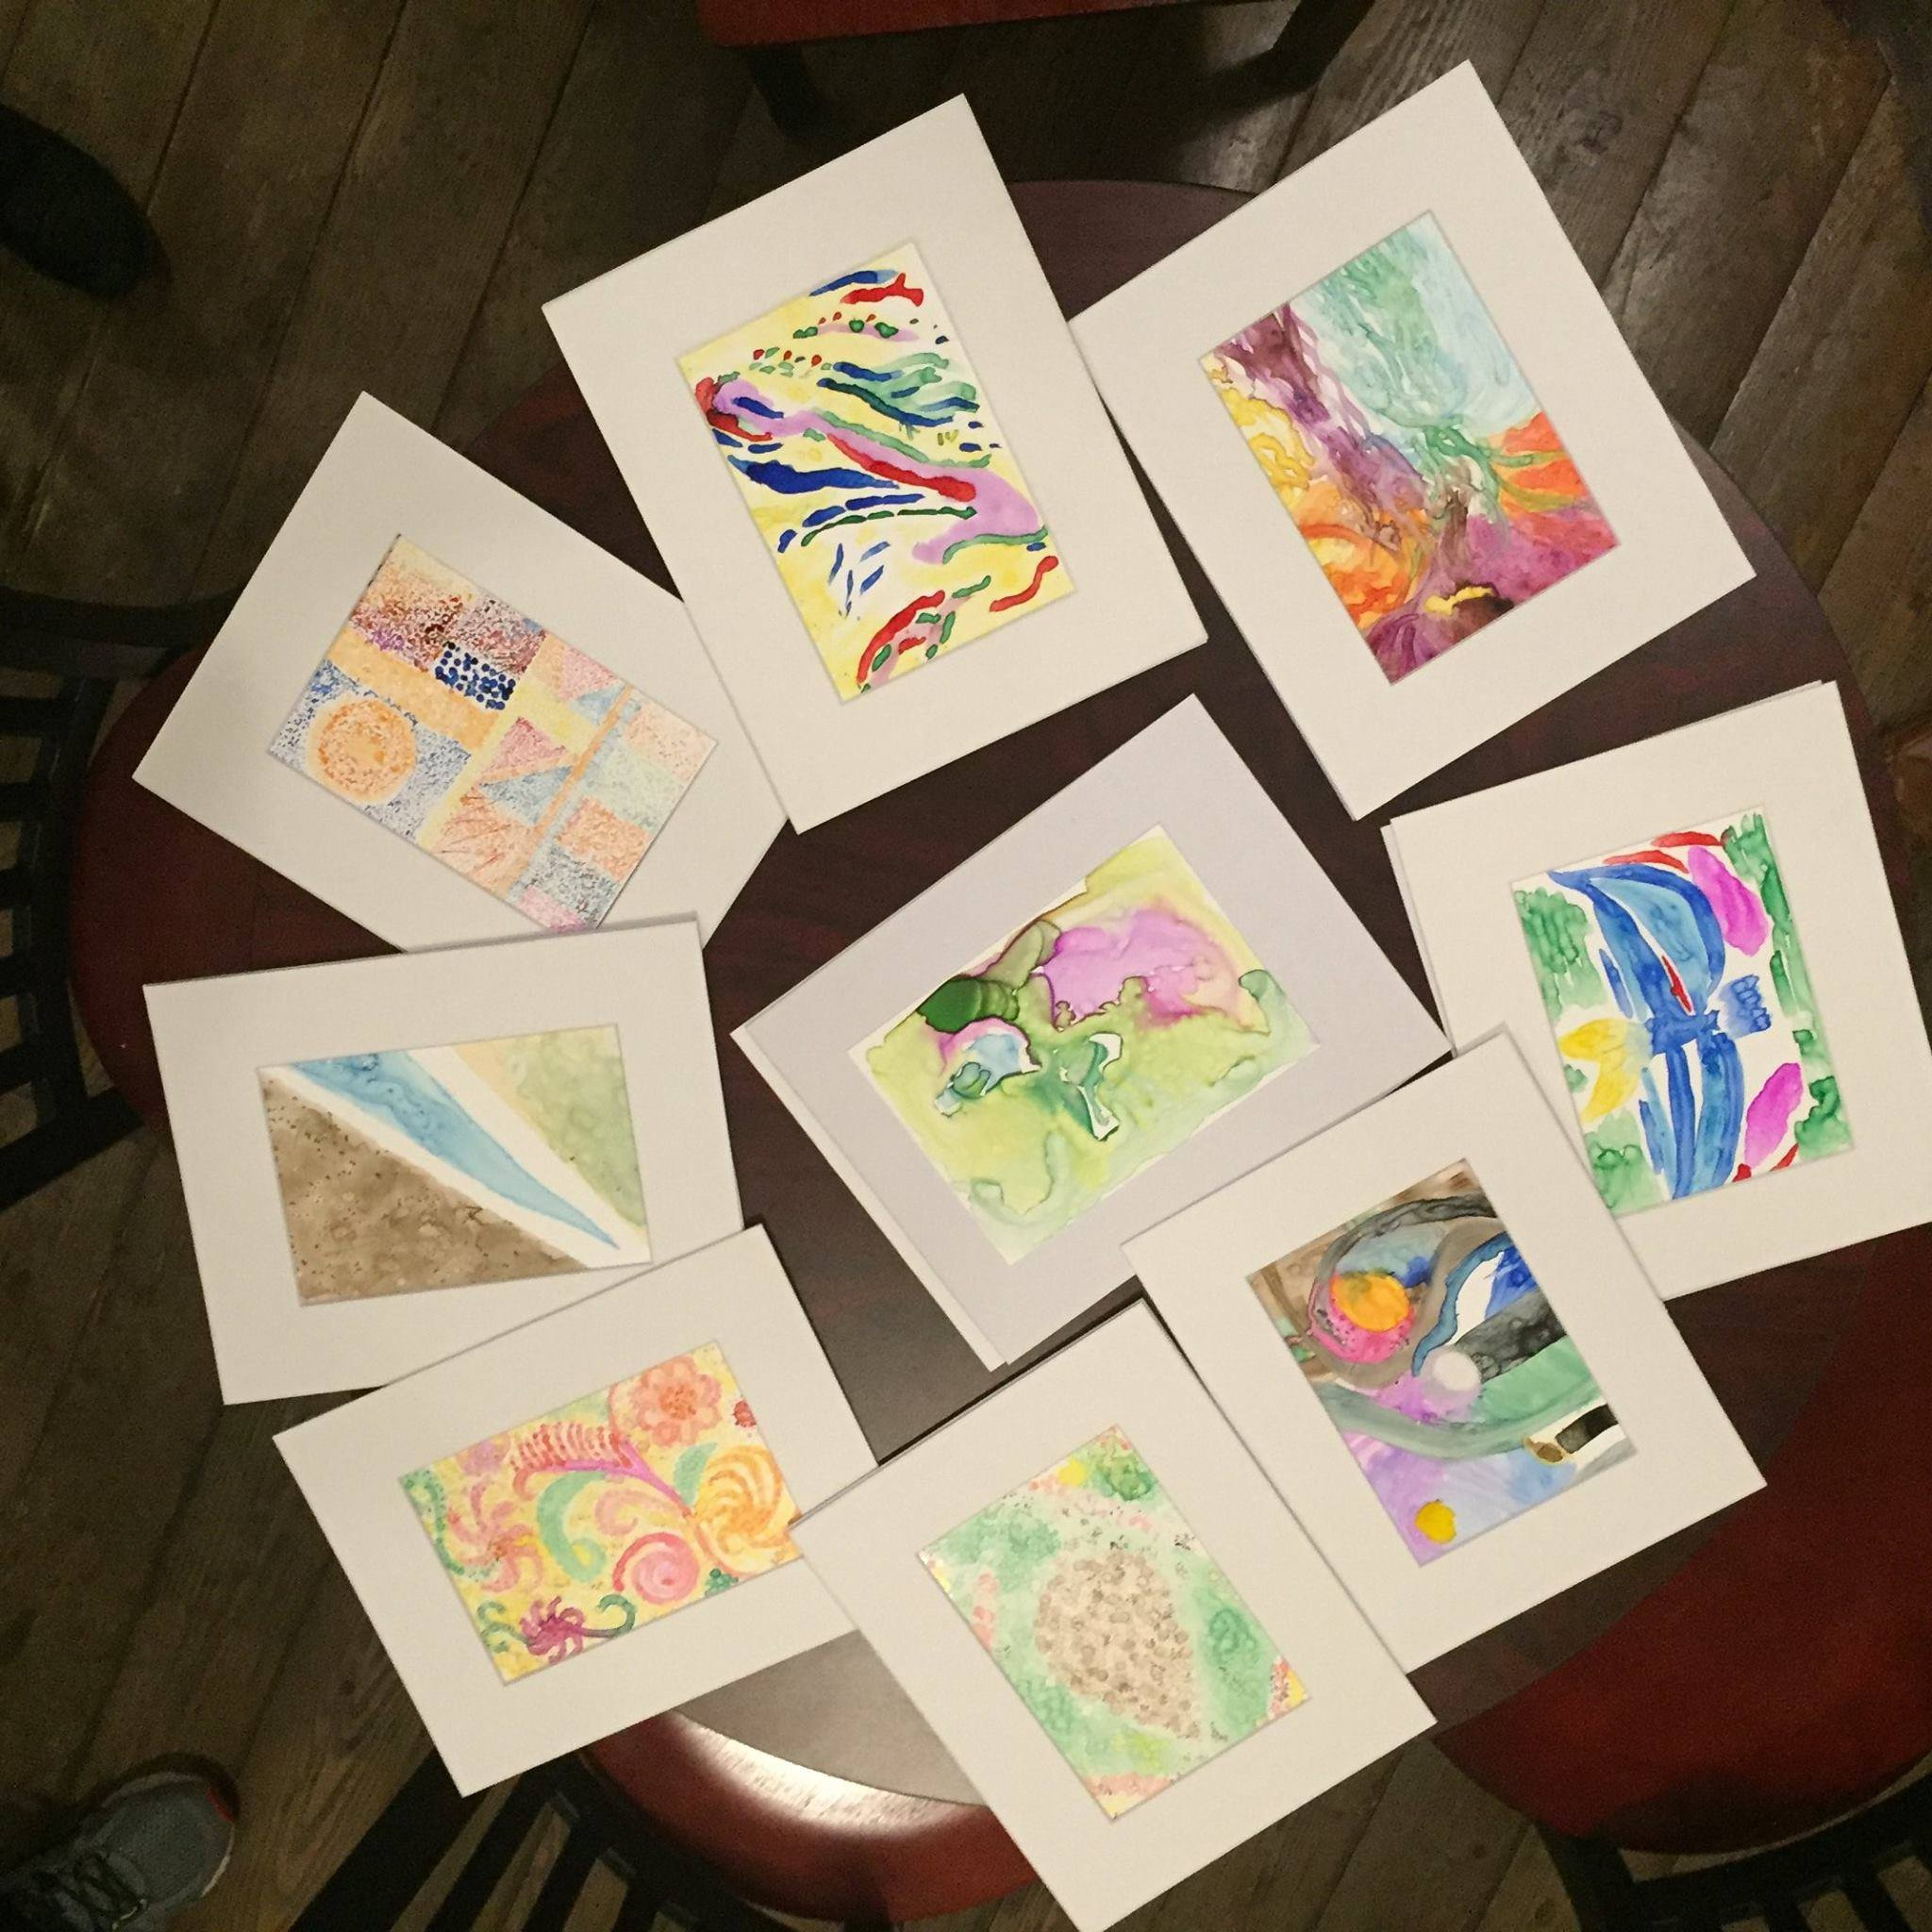 Individual art pieces by attendees